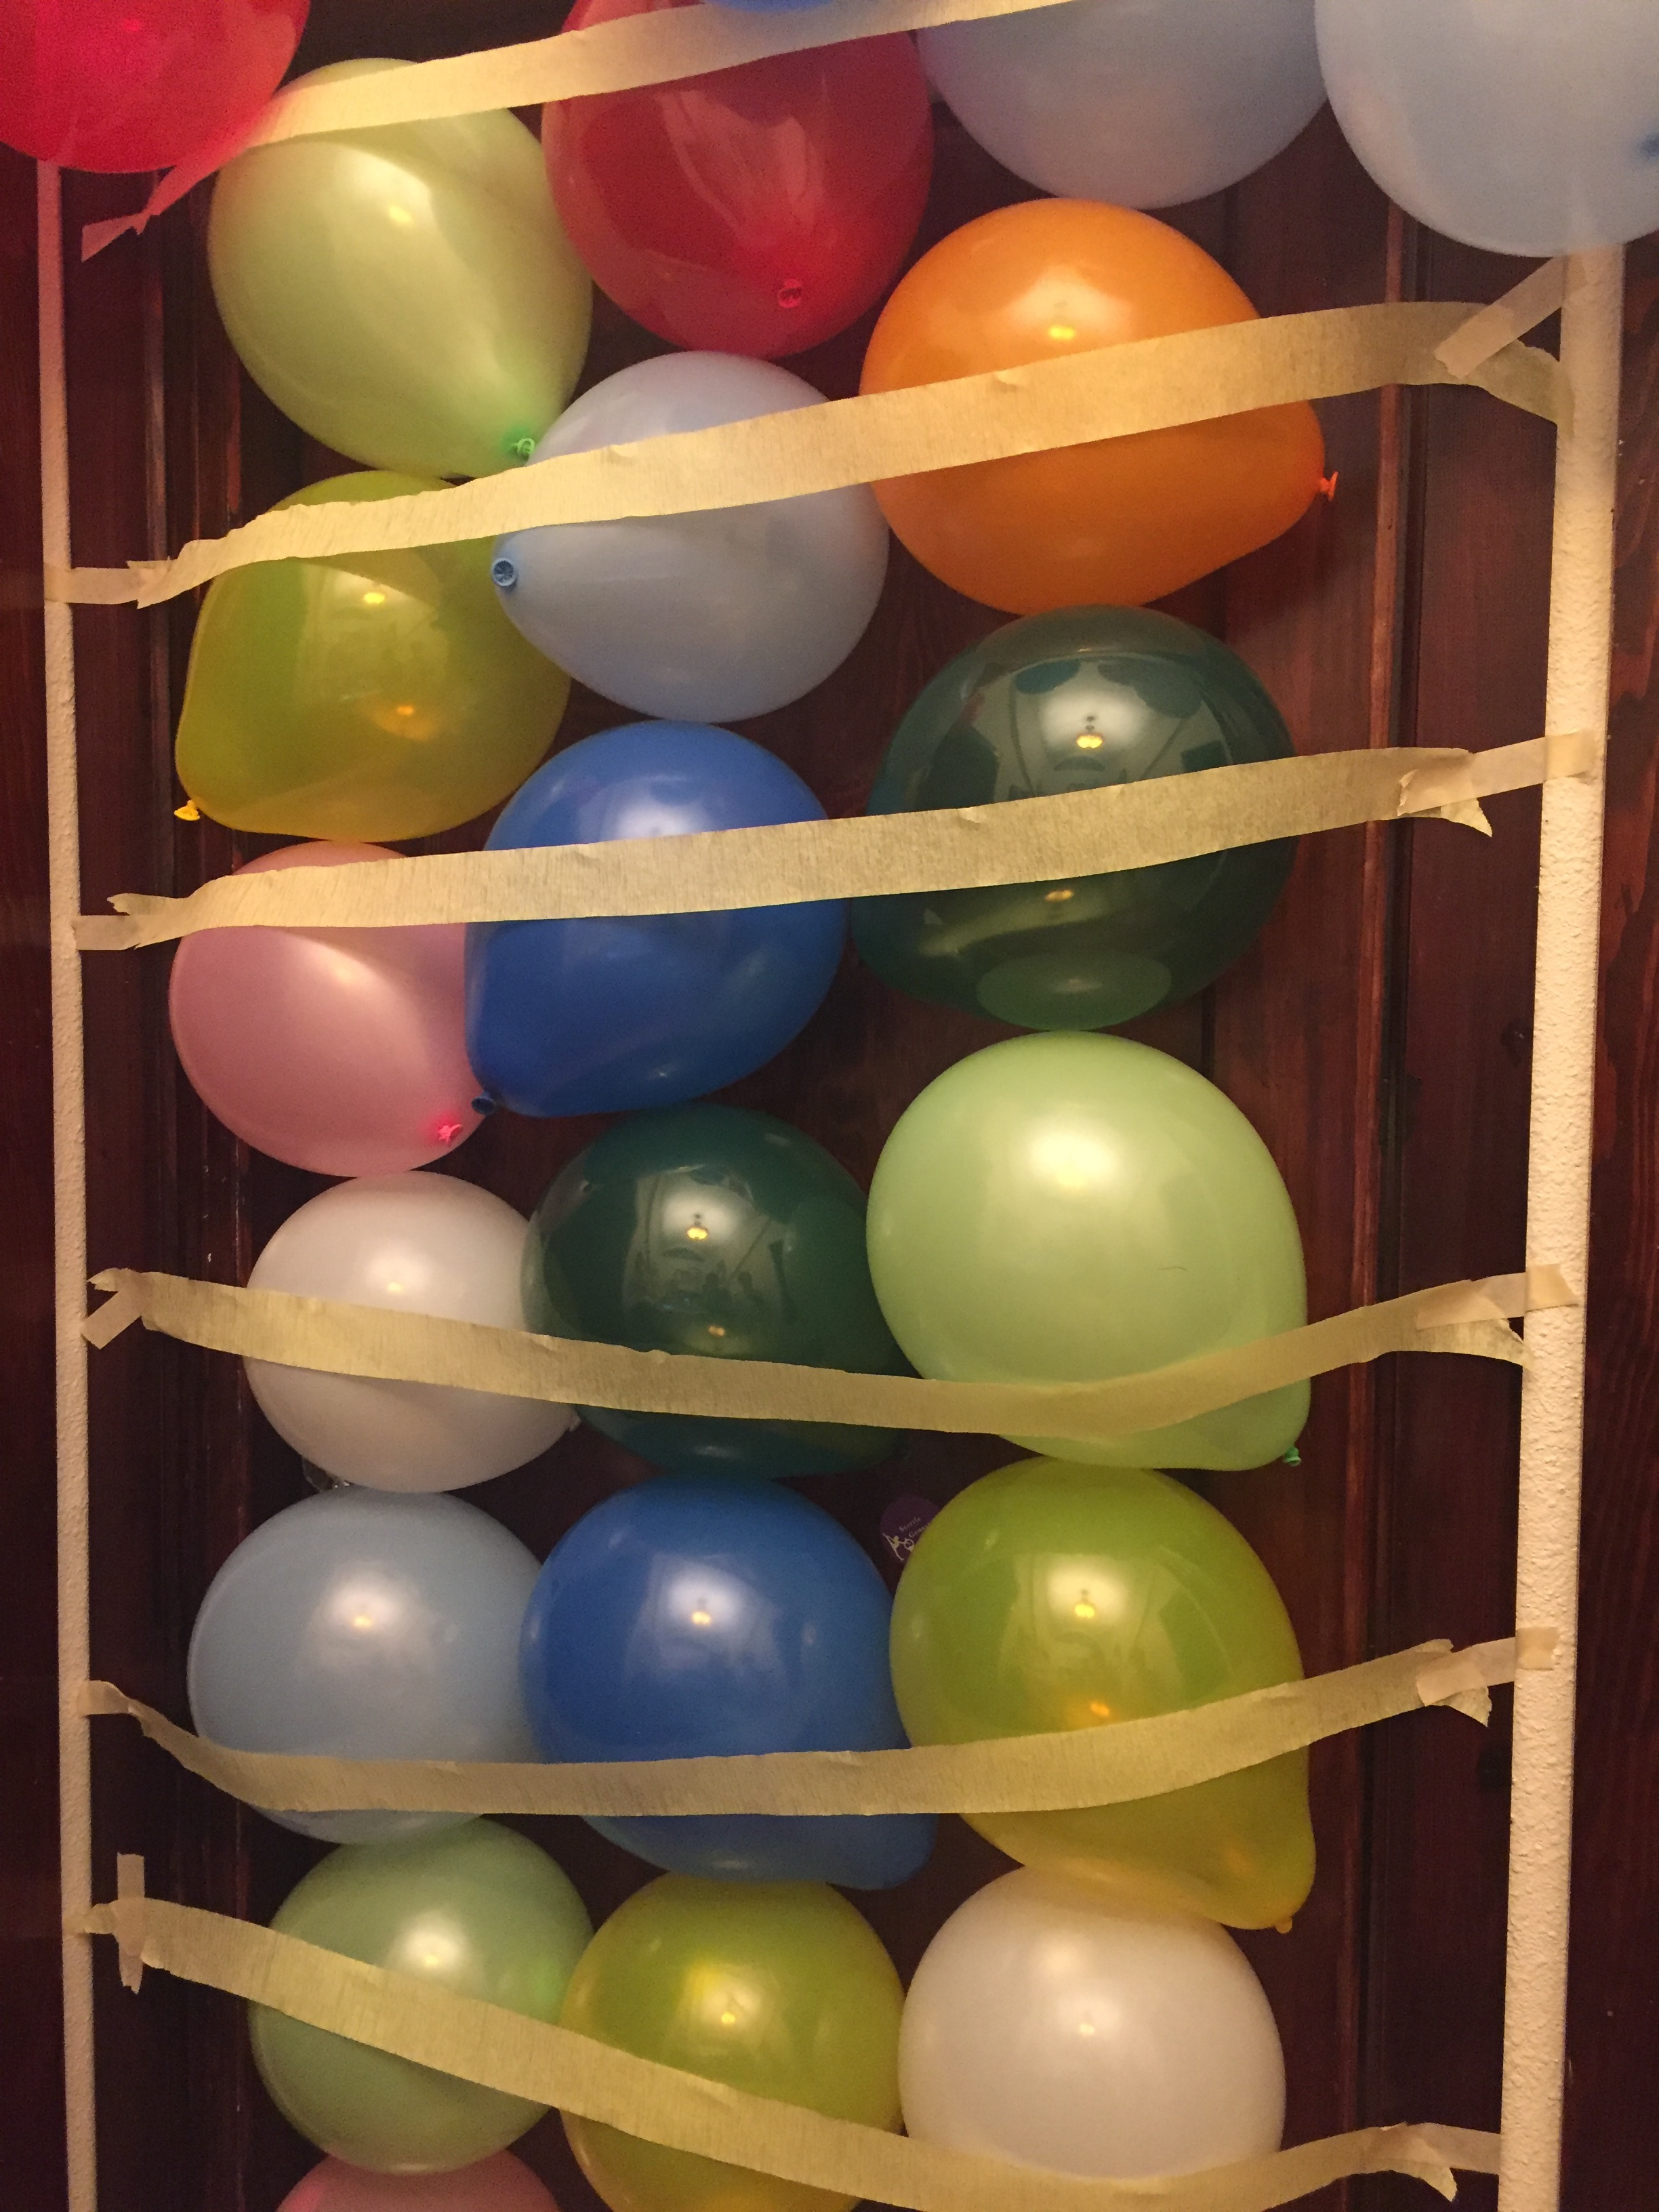 Balloons attached to kid's bedroom door for birthday surprise